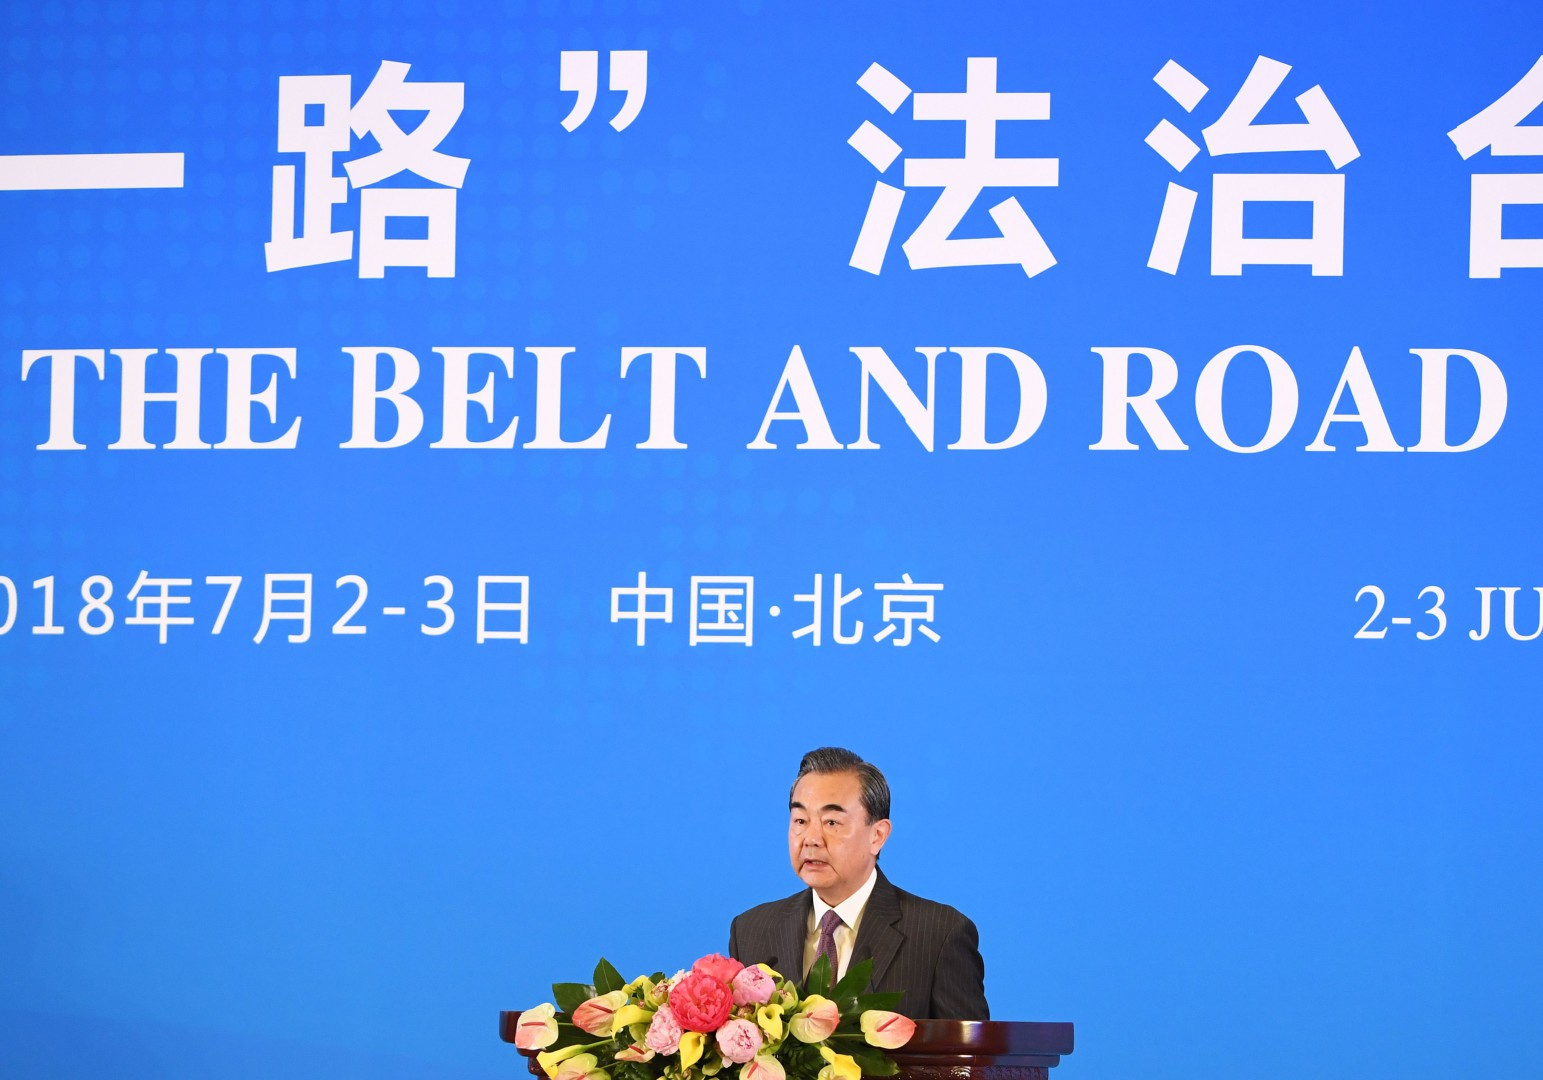 China's Foreign Minister Wang Yi speaks during the opening session of the Belt and Road Forum on Legal Cooperation at the Diaoyutai State Guesthouse in Beijing on July 2, 2018. / AFP PHOTO / GREG BAKER